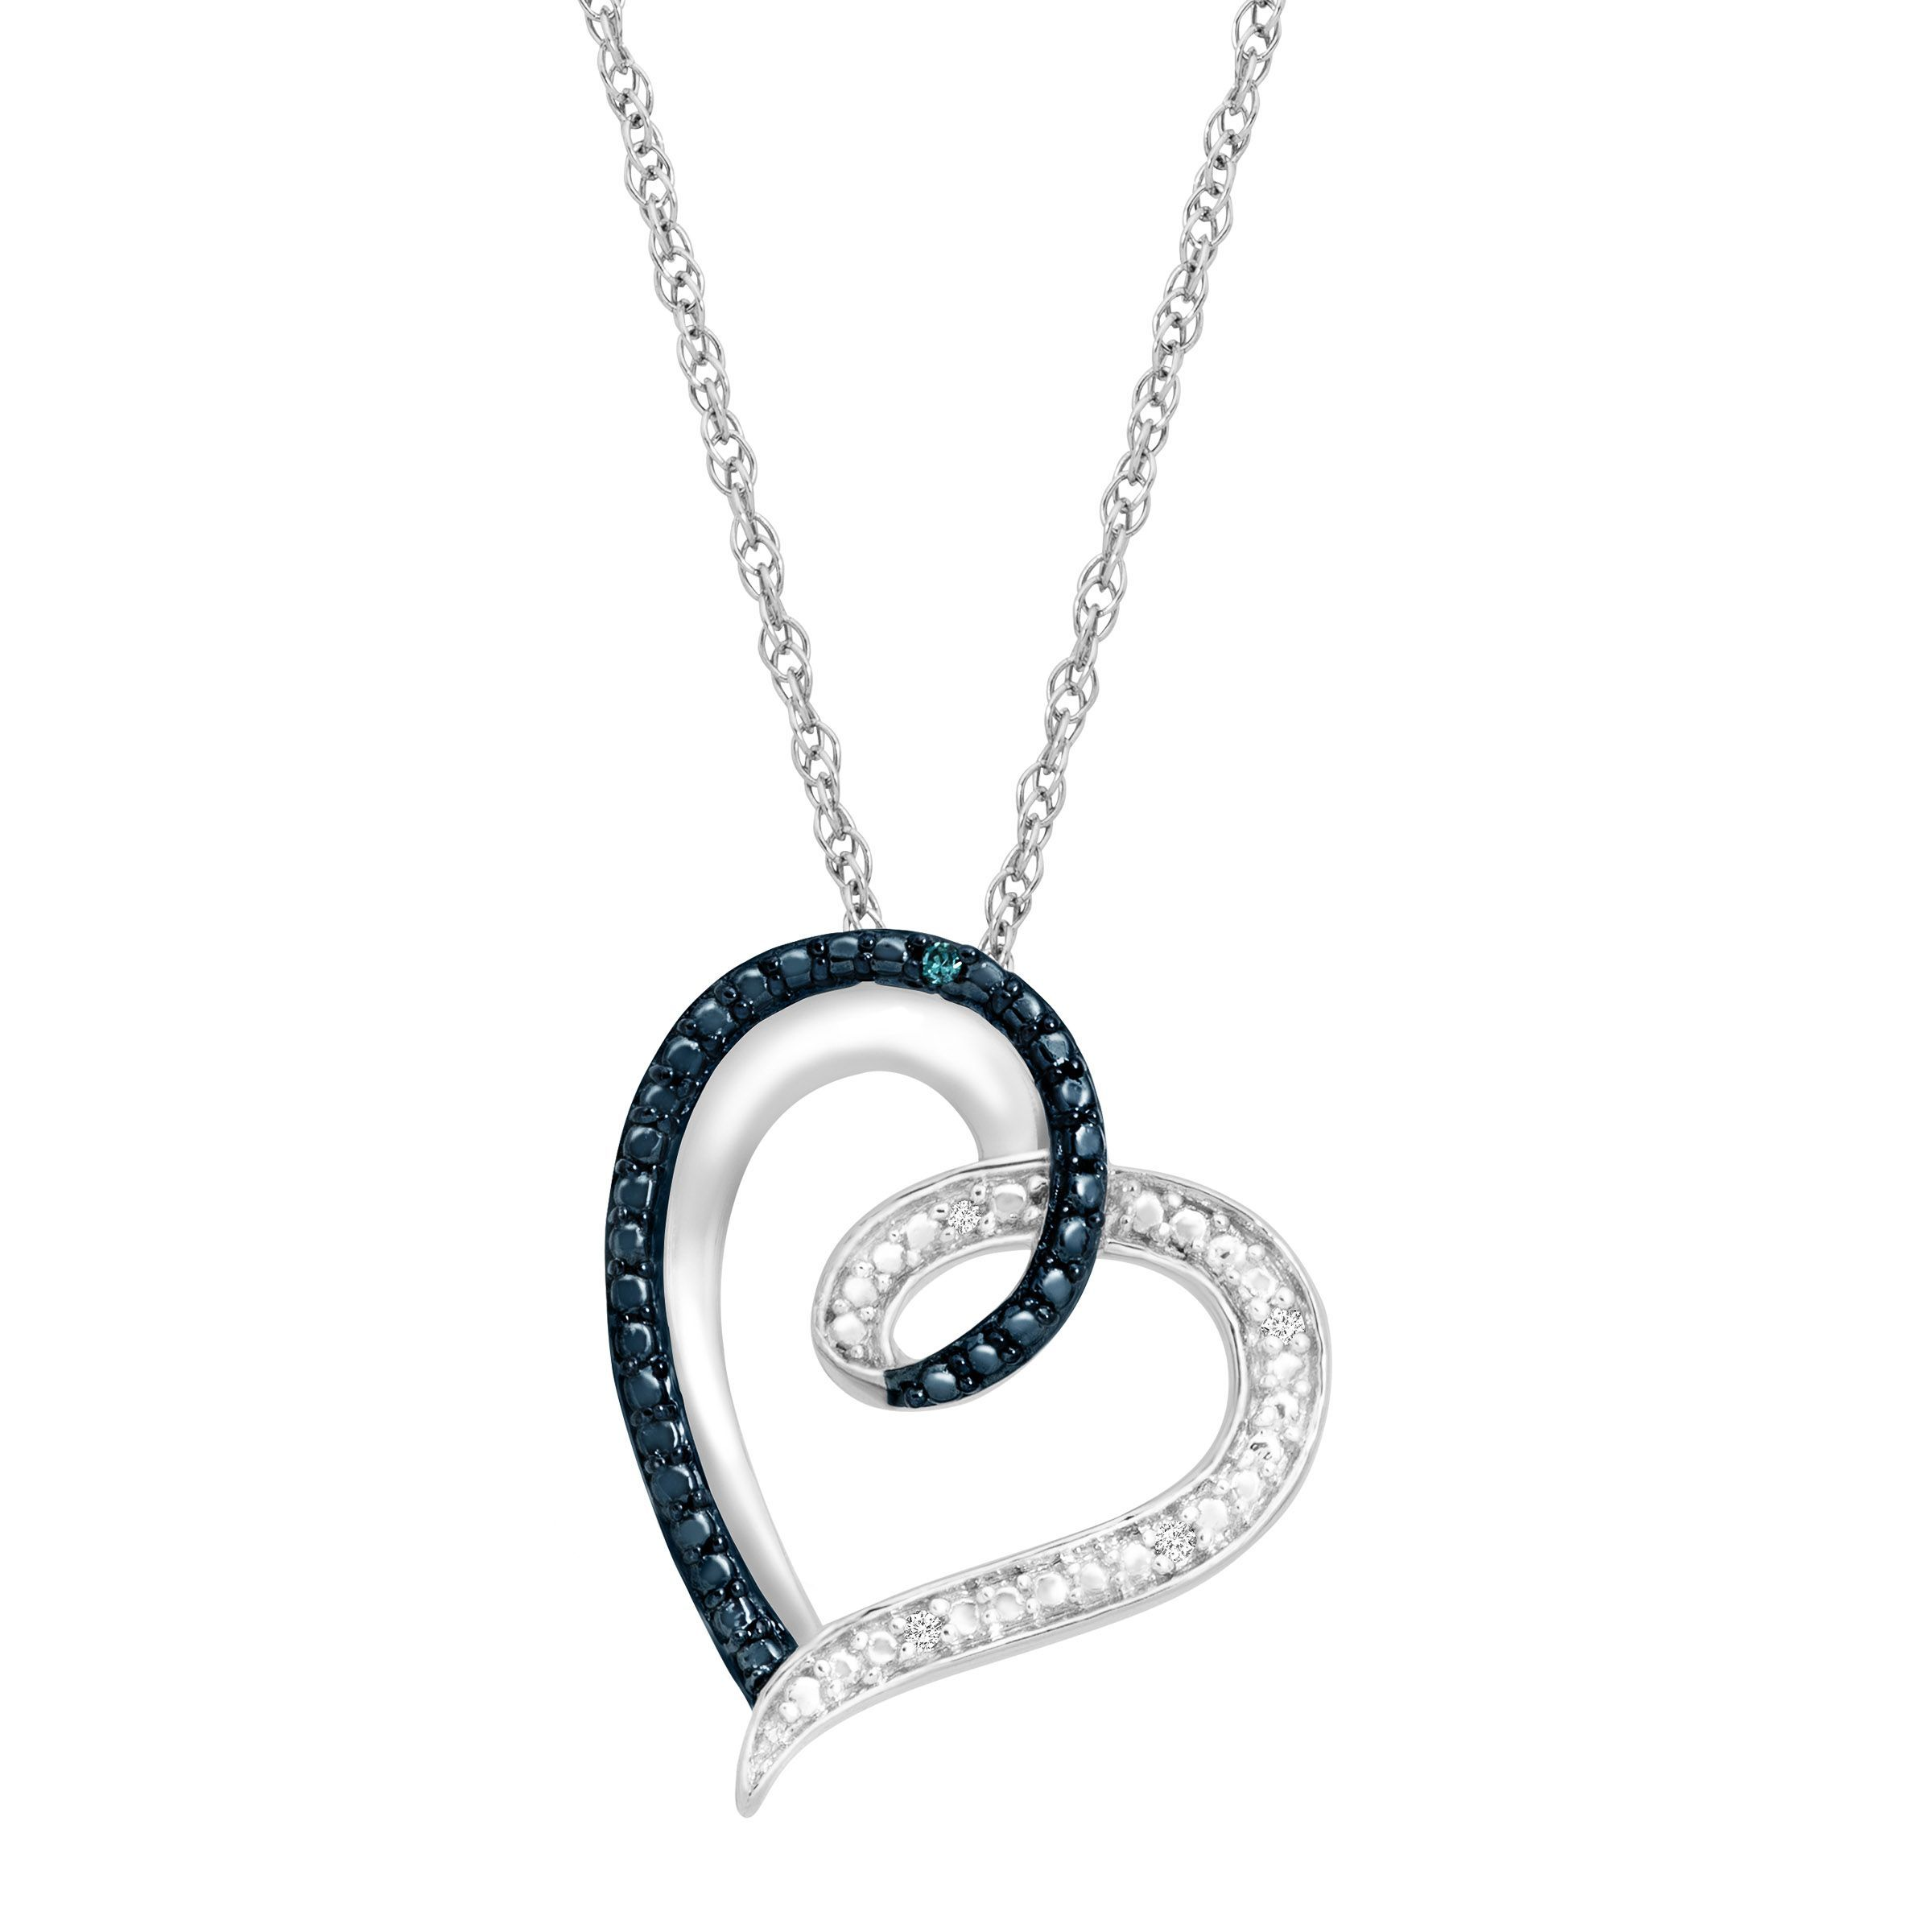 1aca67f9401 Heart Pendant Necklace With Blue And White Diamonds In Sterling Silver 18